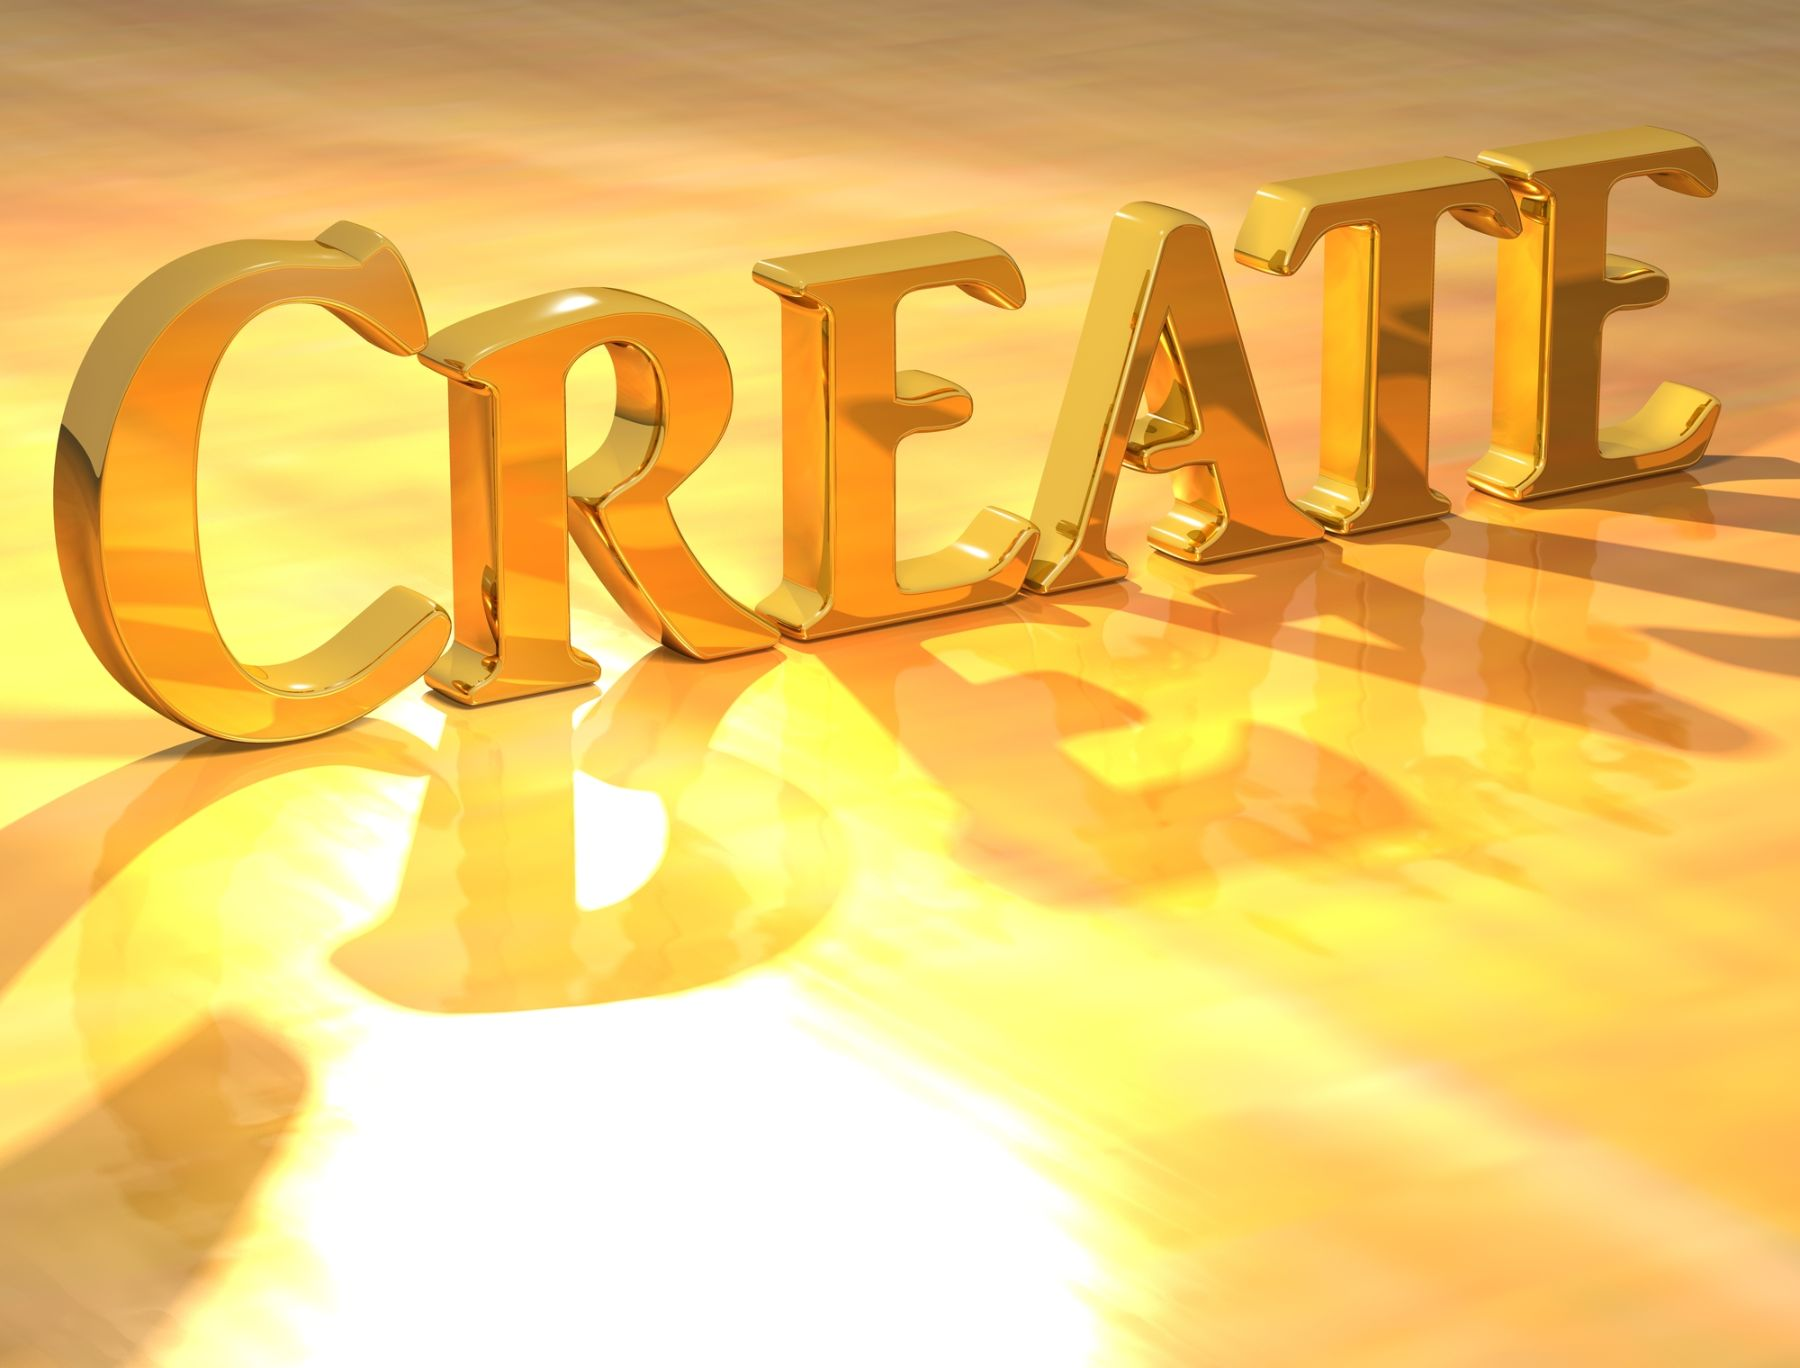 Create in gold letters